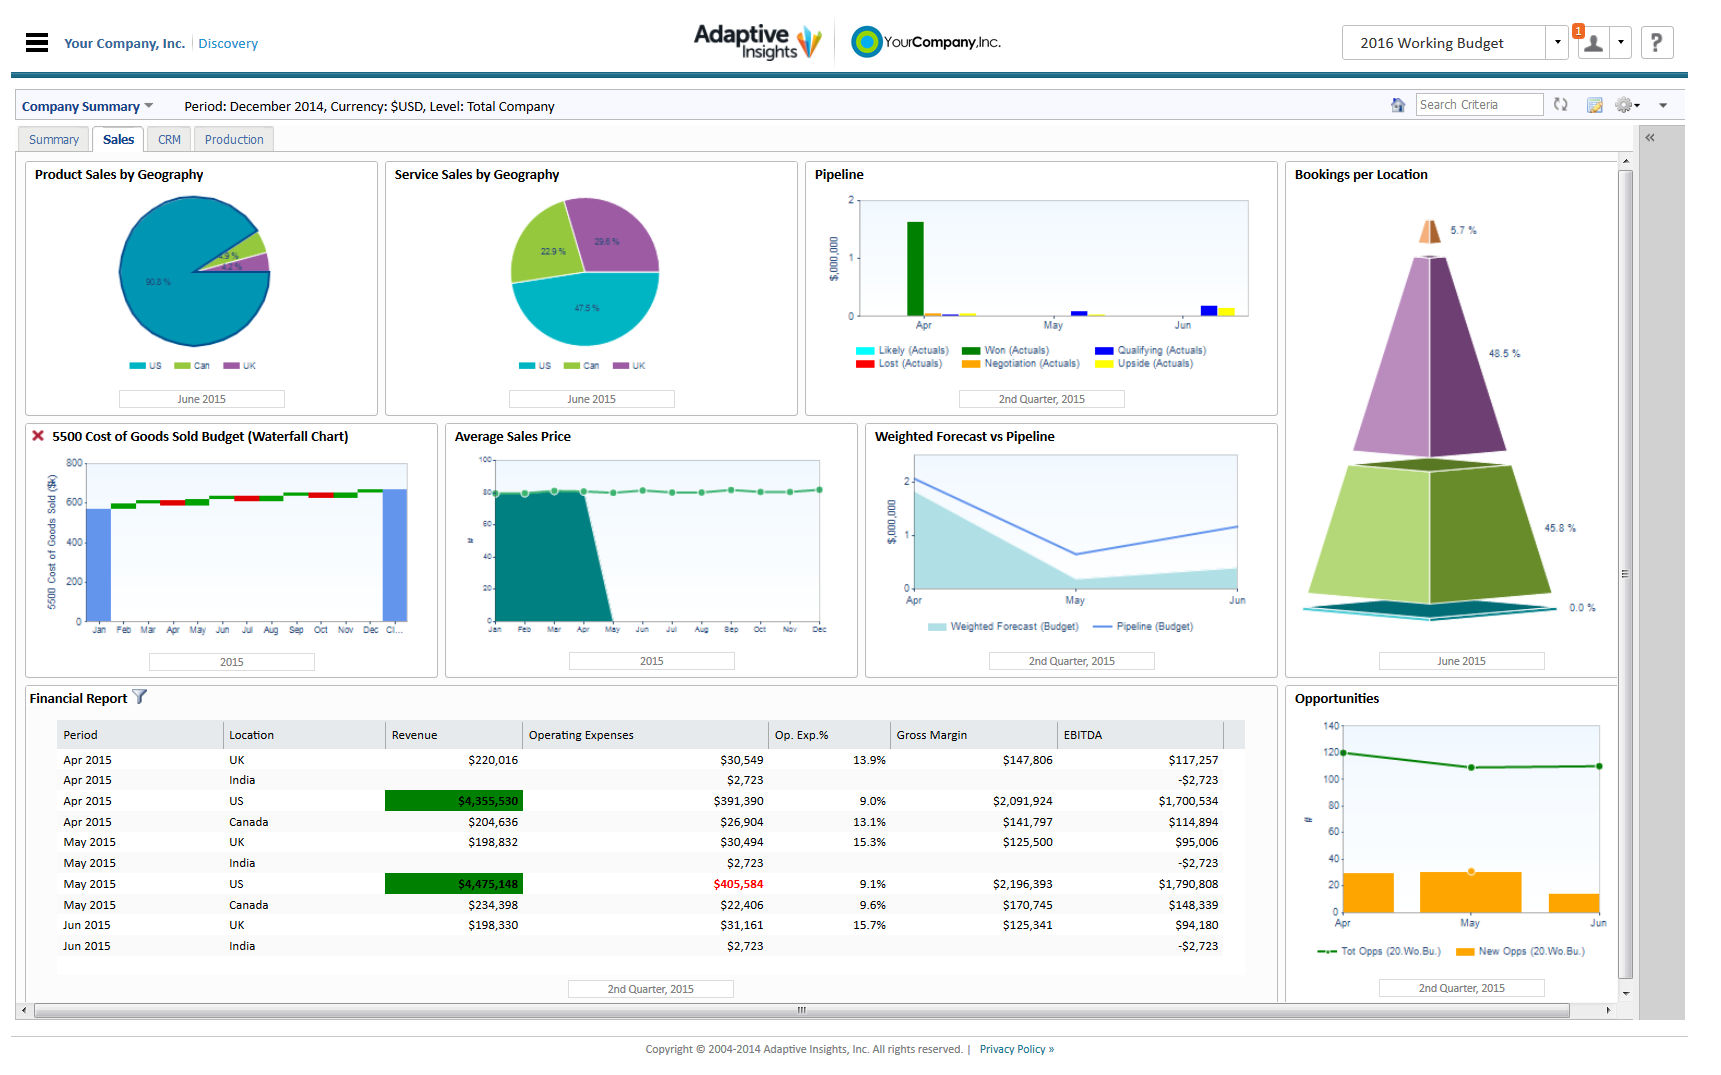 Adaptive Insights Business Planning Cloud Demo - Analytics in Adaptive Insights